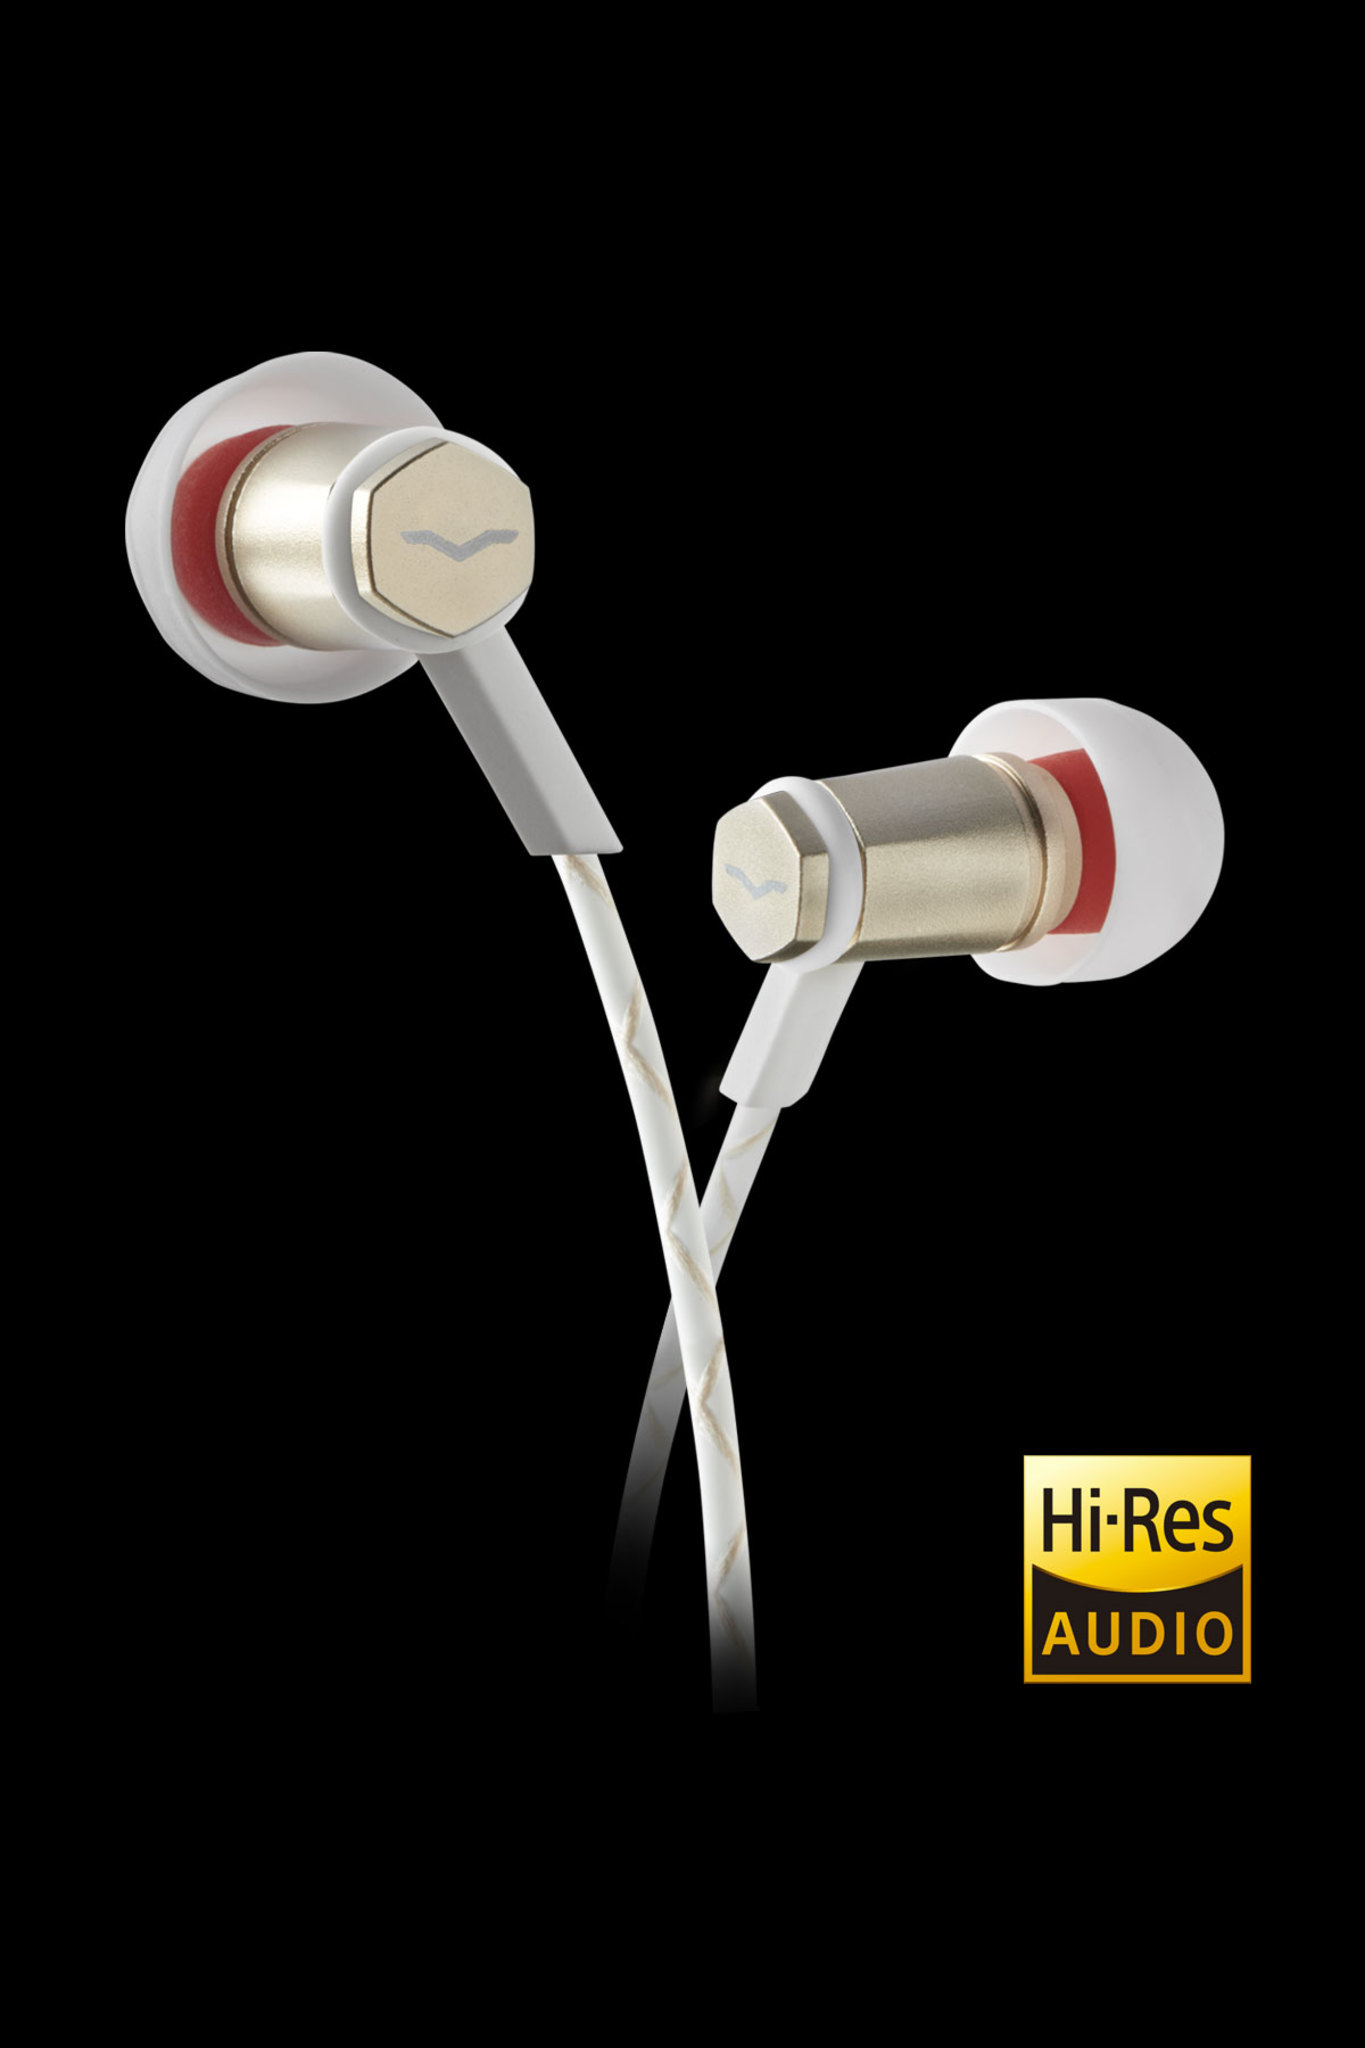 White Forza Metallo In-Ear Headphones with Hi-Res Audio certification